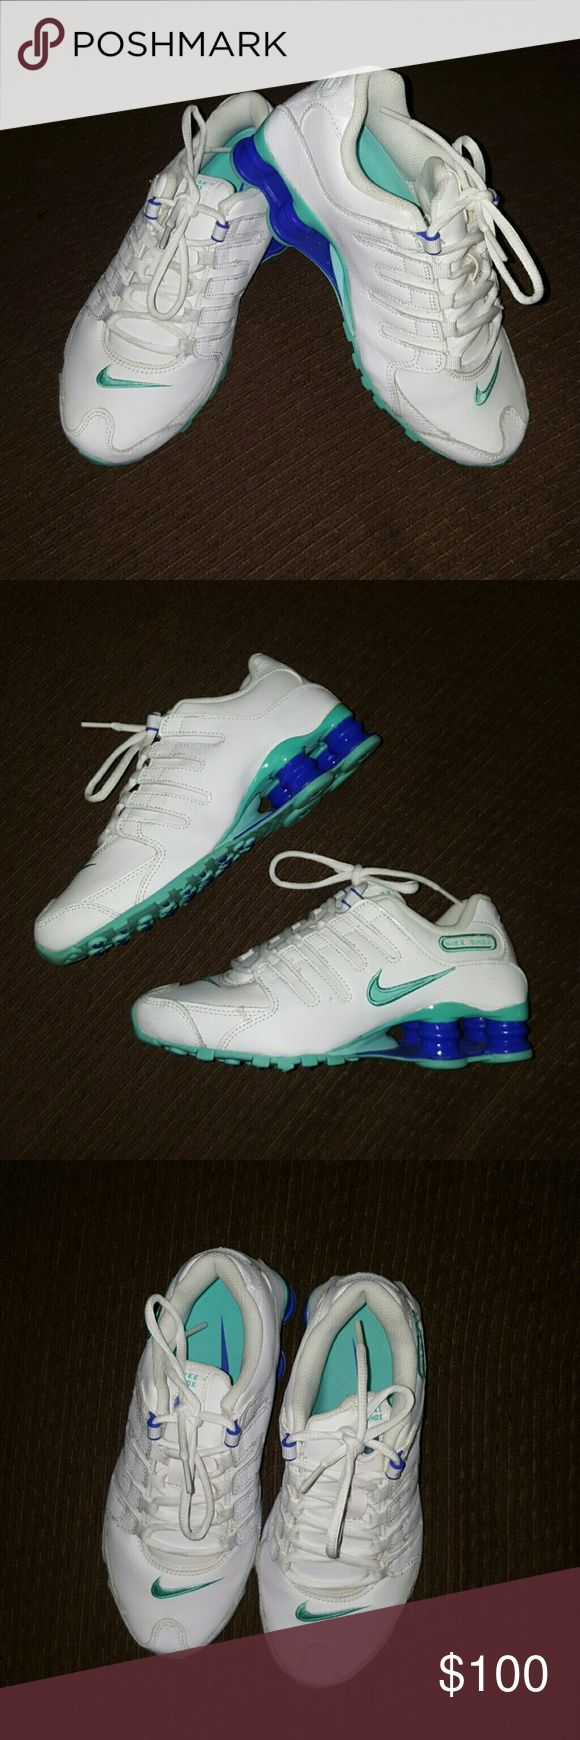 Women's Nike Shox NZ Size 6 *NEW Women's Nike Shox NZ SIZE 6 WHITE & ROYAL BLUE NEVER USED/WORN IN EXCELLENT CONDITION  MAKE ME AN OFFER NIKE Shoes Athletic Shoes